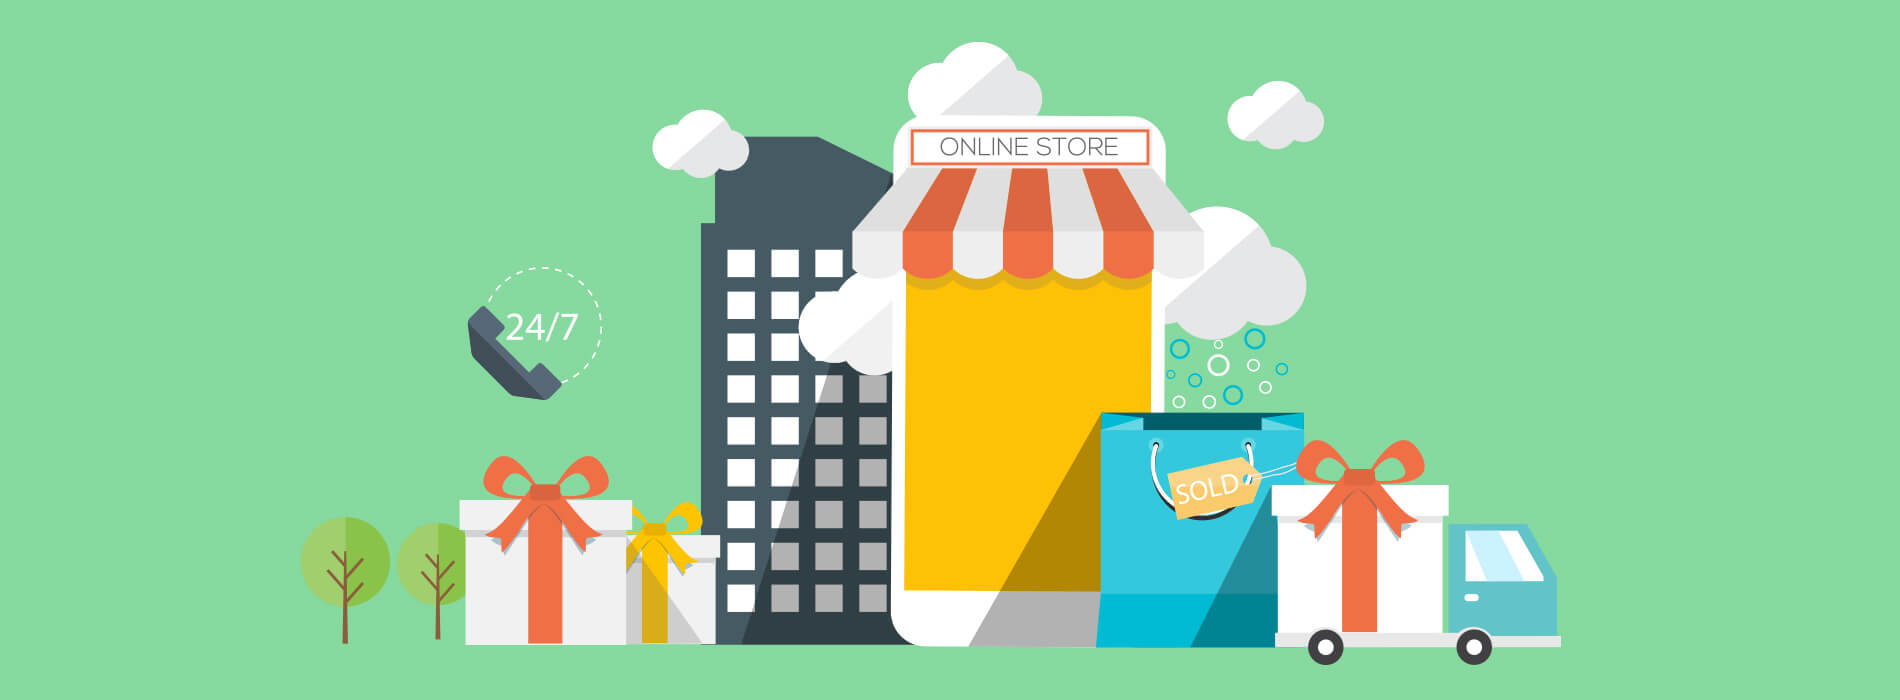 Is Mobile Commerce about to Go Boom?